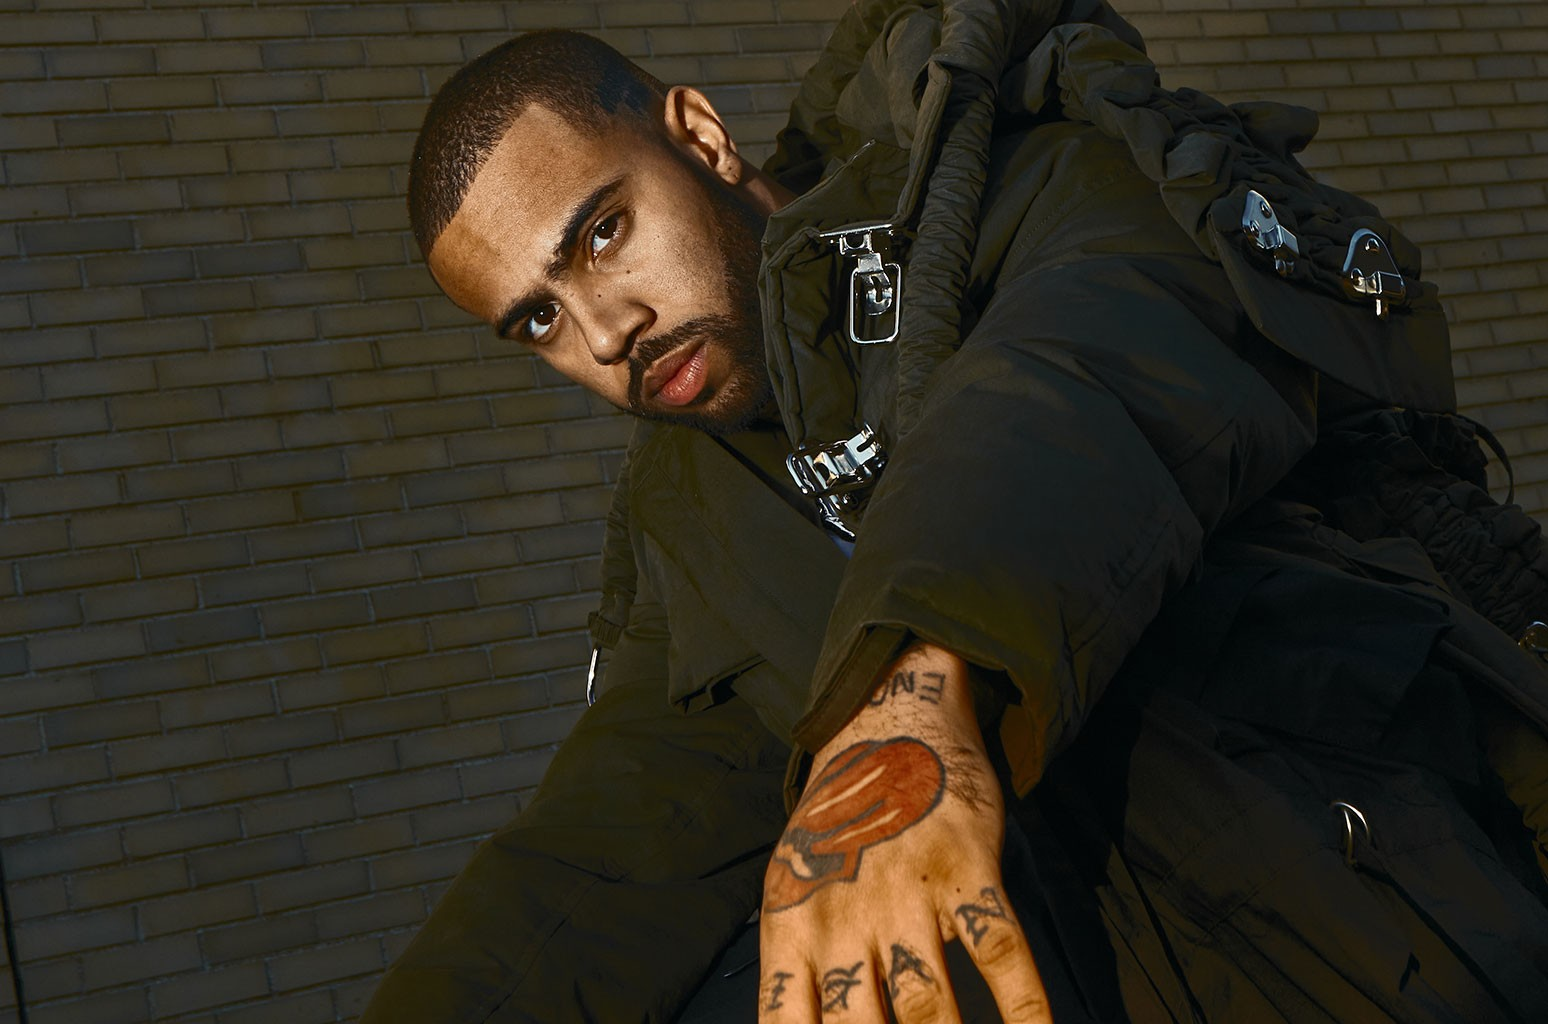 Black History Month: Vic Mensa Speaks on His Prison Abolition Mission & Why It's Necessary [Op-Ed]